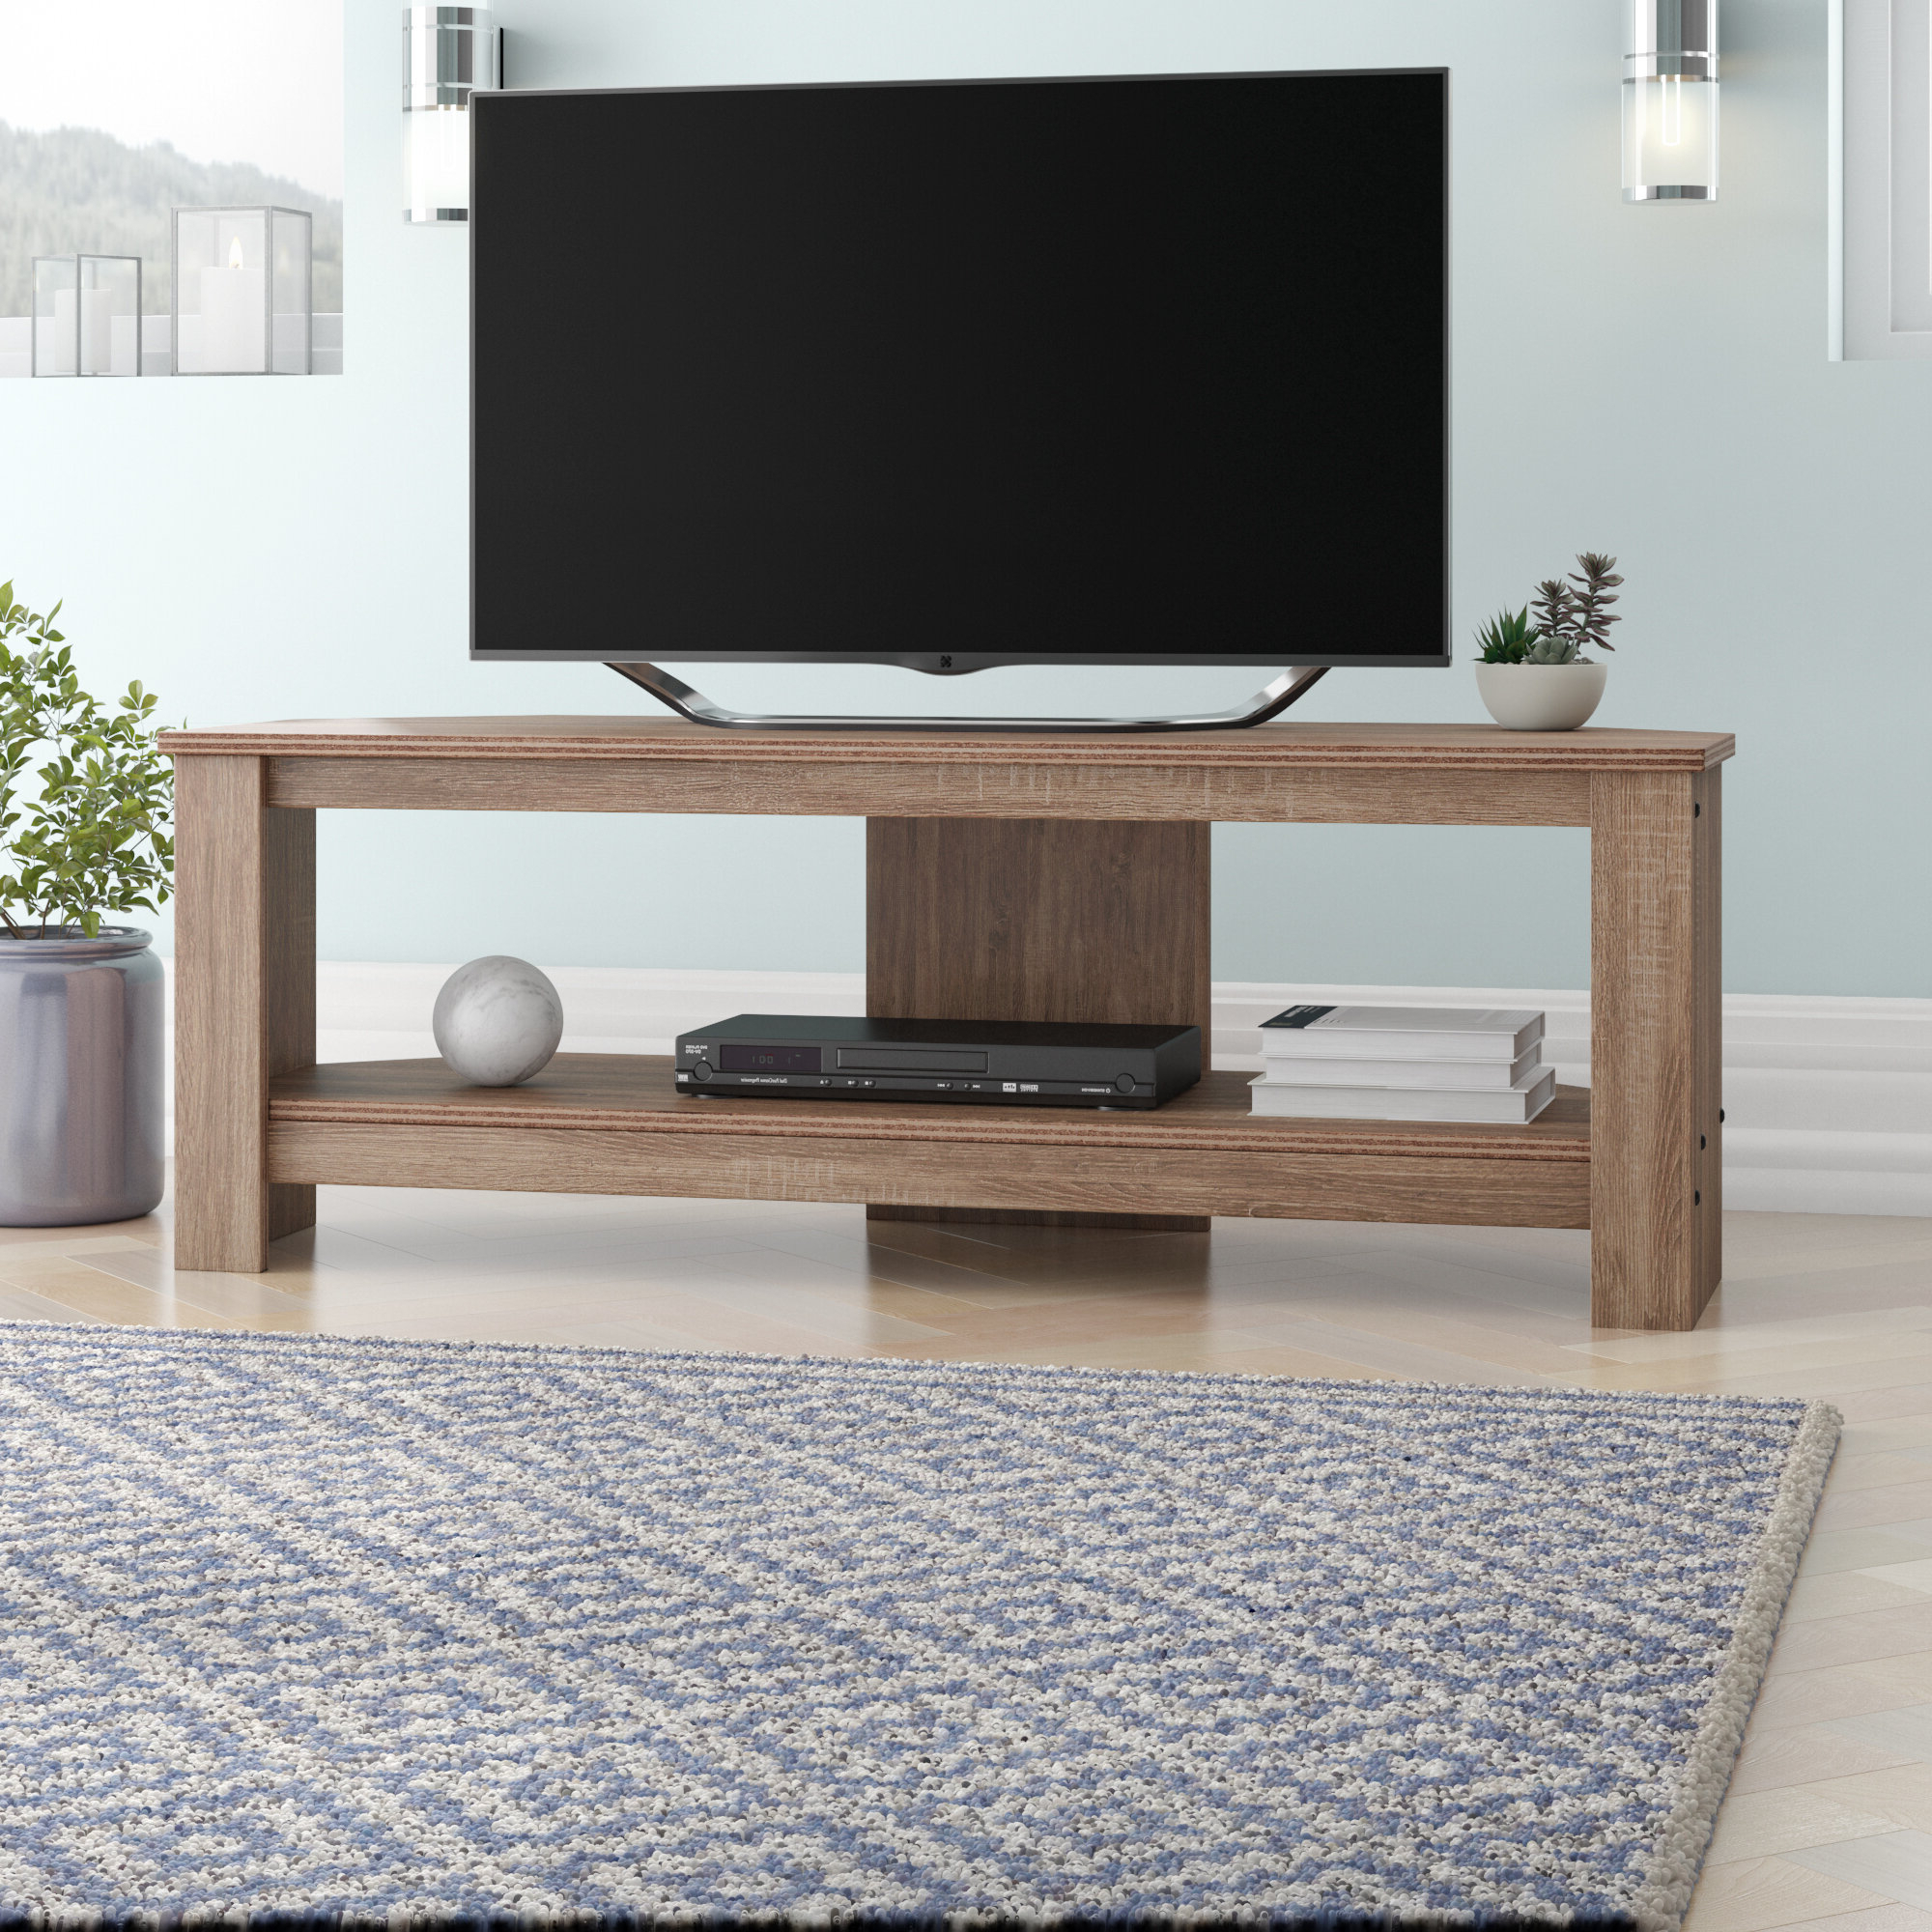 Corner Tv Stands For 46 Inch Flat Screen With Regard To 2018 Corner Tv Stands You'll Love (Gallery 17 of 20)